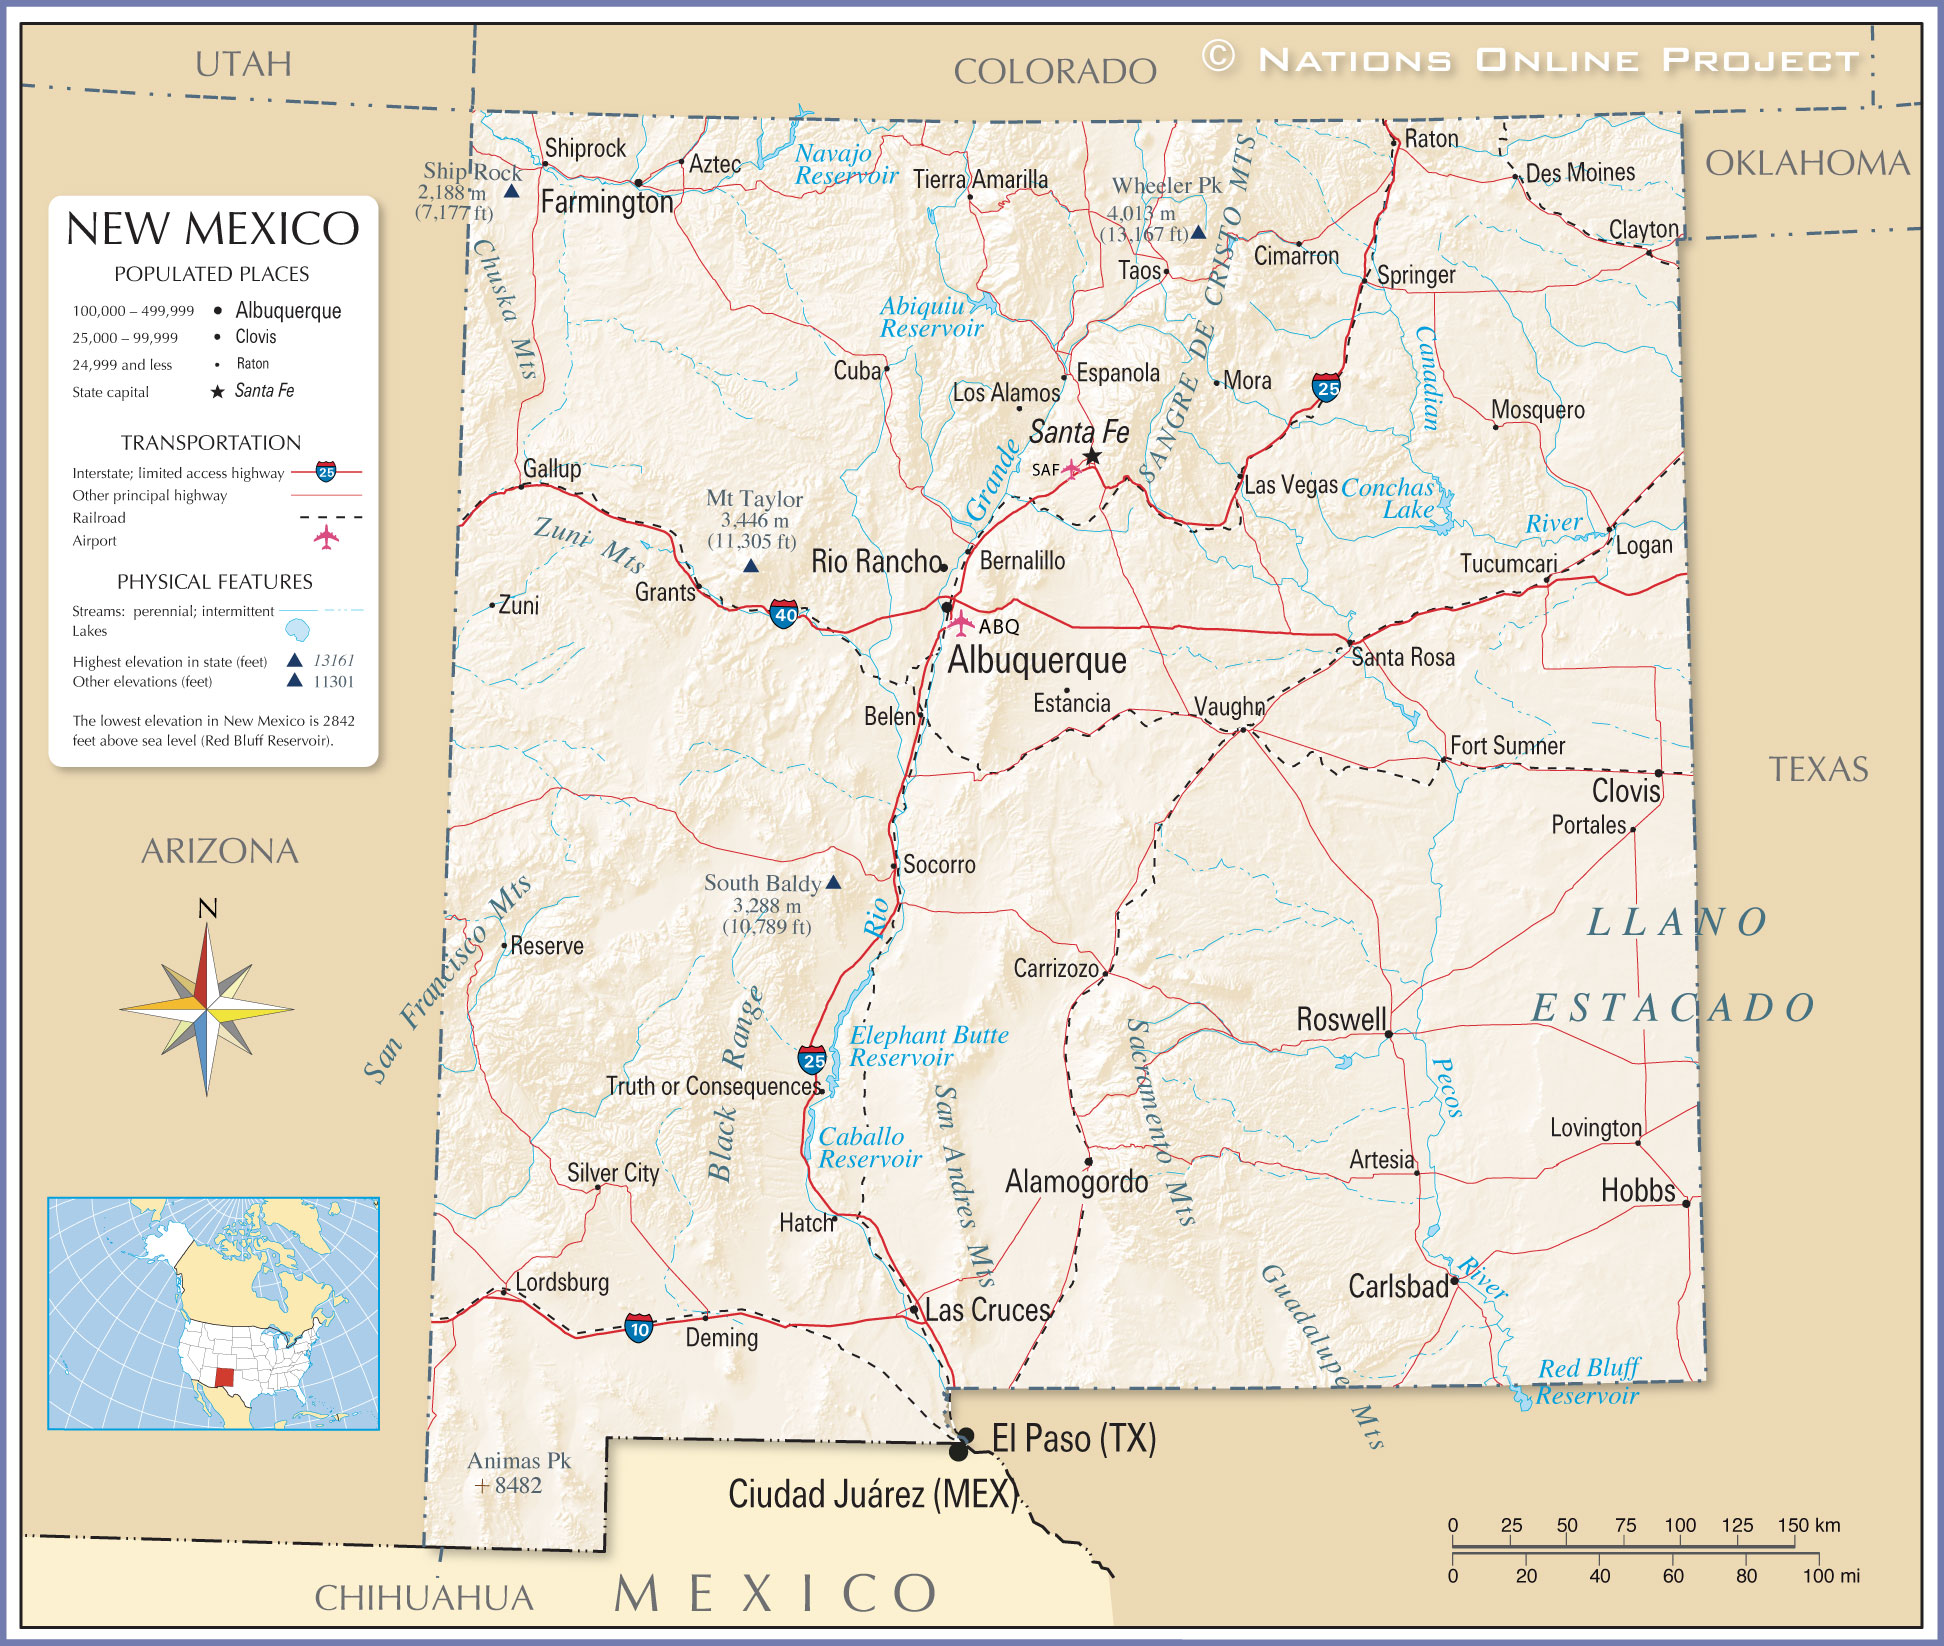 New_Mexico_map Show Me A Map Of New Mexico State on show me a map of new york, show me a map of new england, ma new mexico, pitchers of the map of new mexico, large map of new mexico, online map of new mexico, show state of new mexico on map, mapquest hobbs new mexico, atlas map of new mexico, show me a map texas,